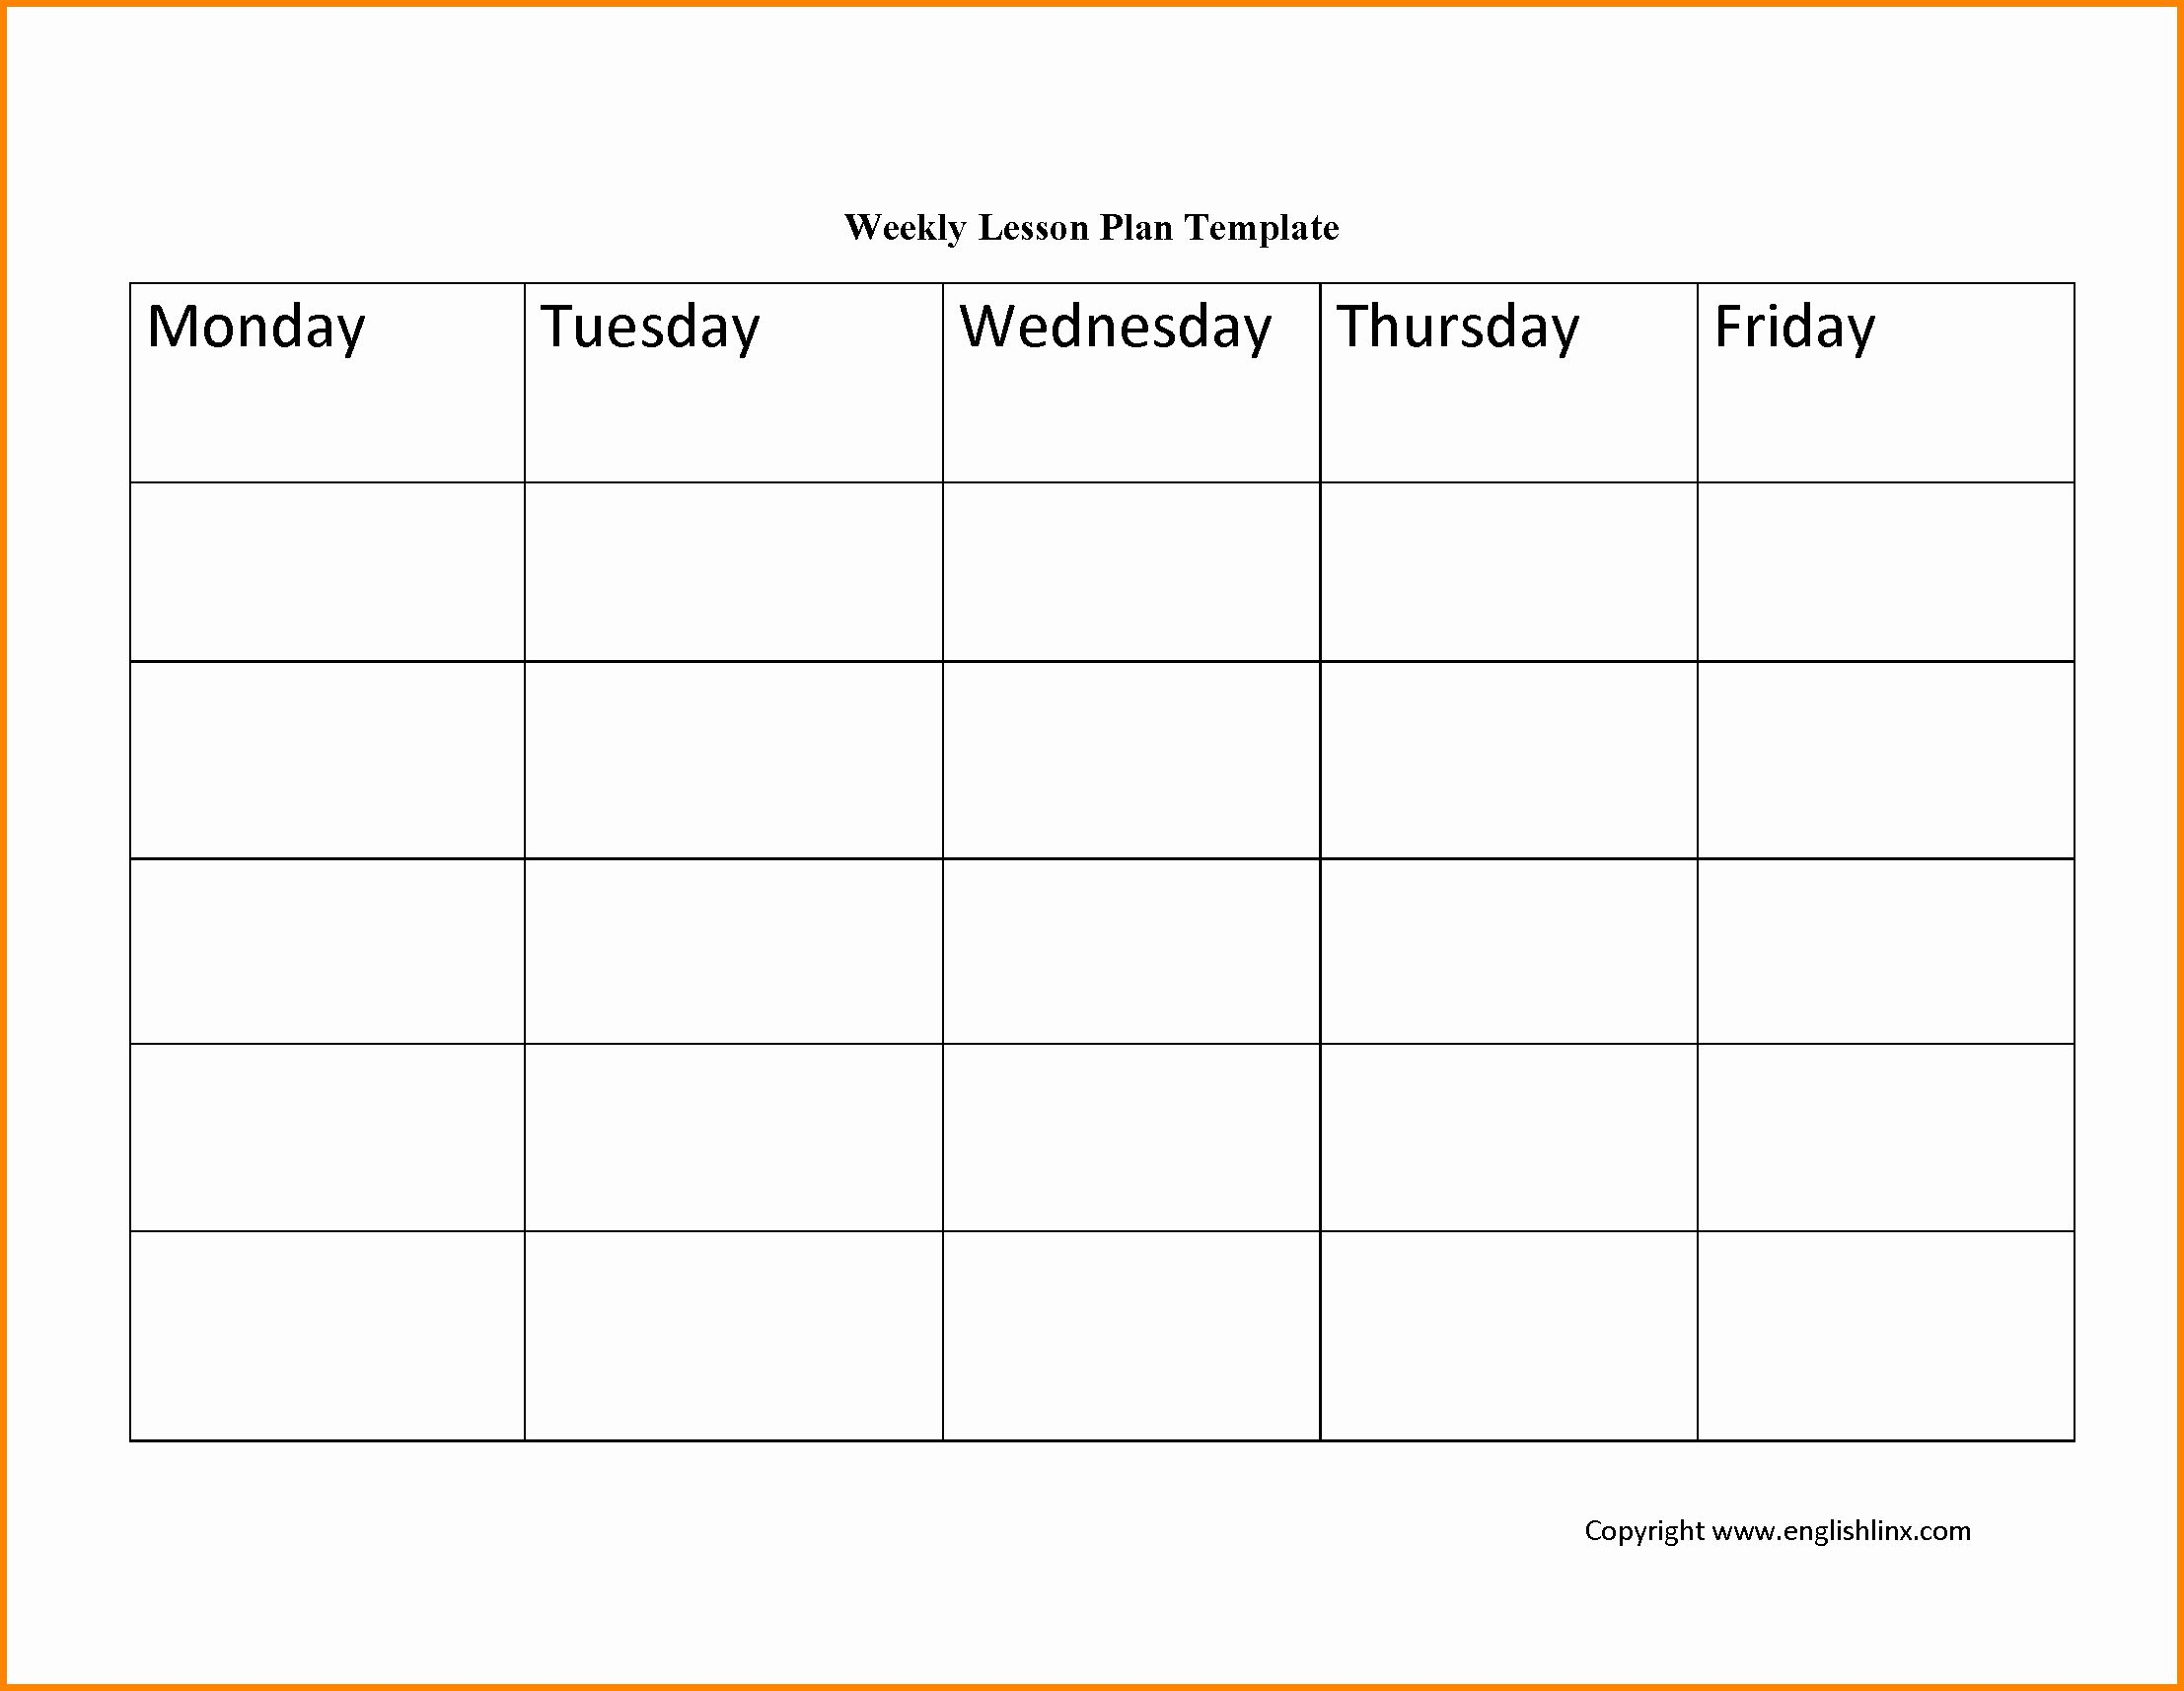 Editable Weekly Lesson Plan Template in 2020 (With images